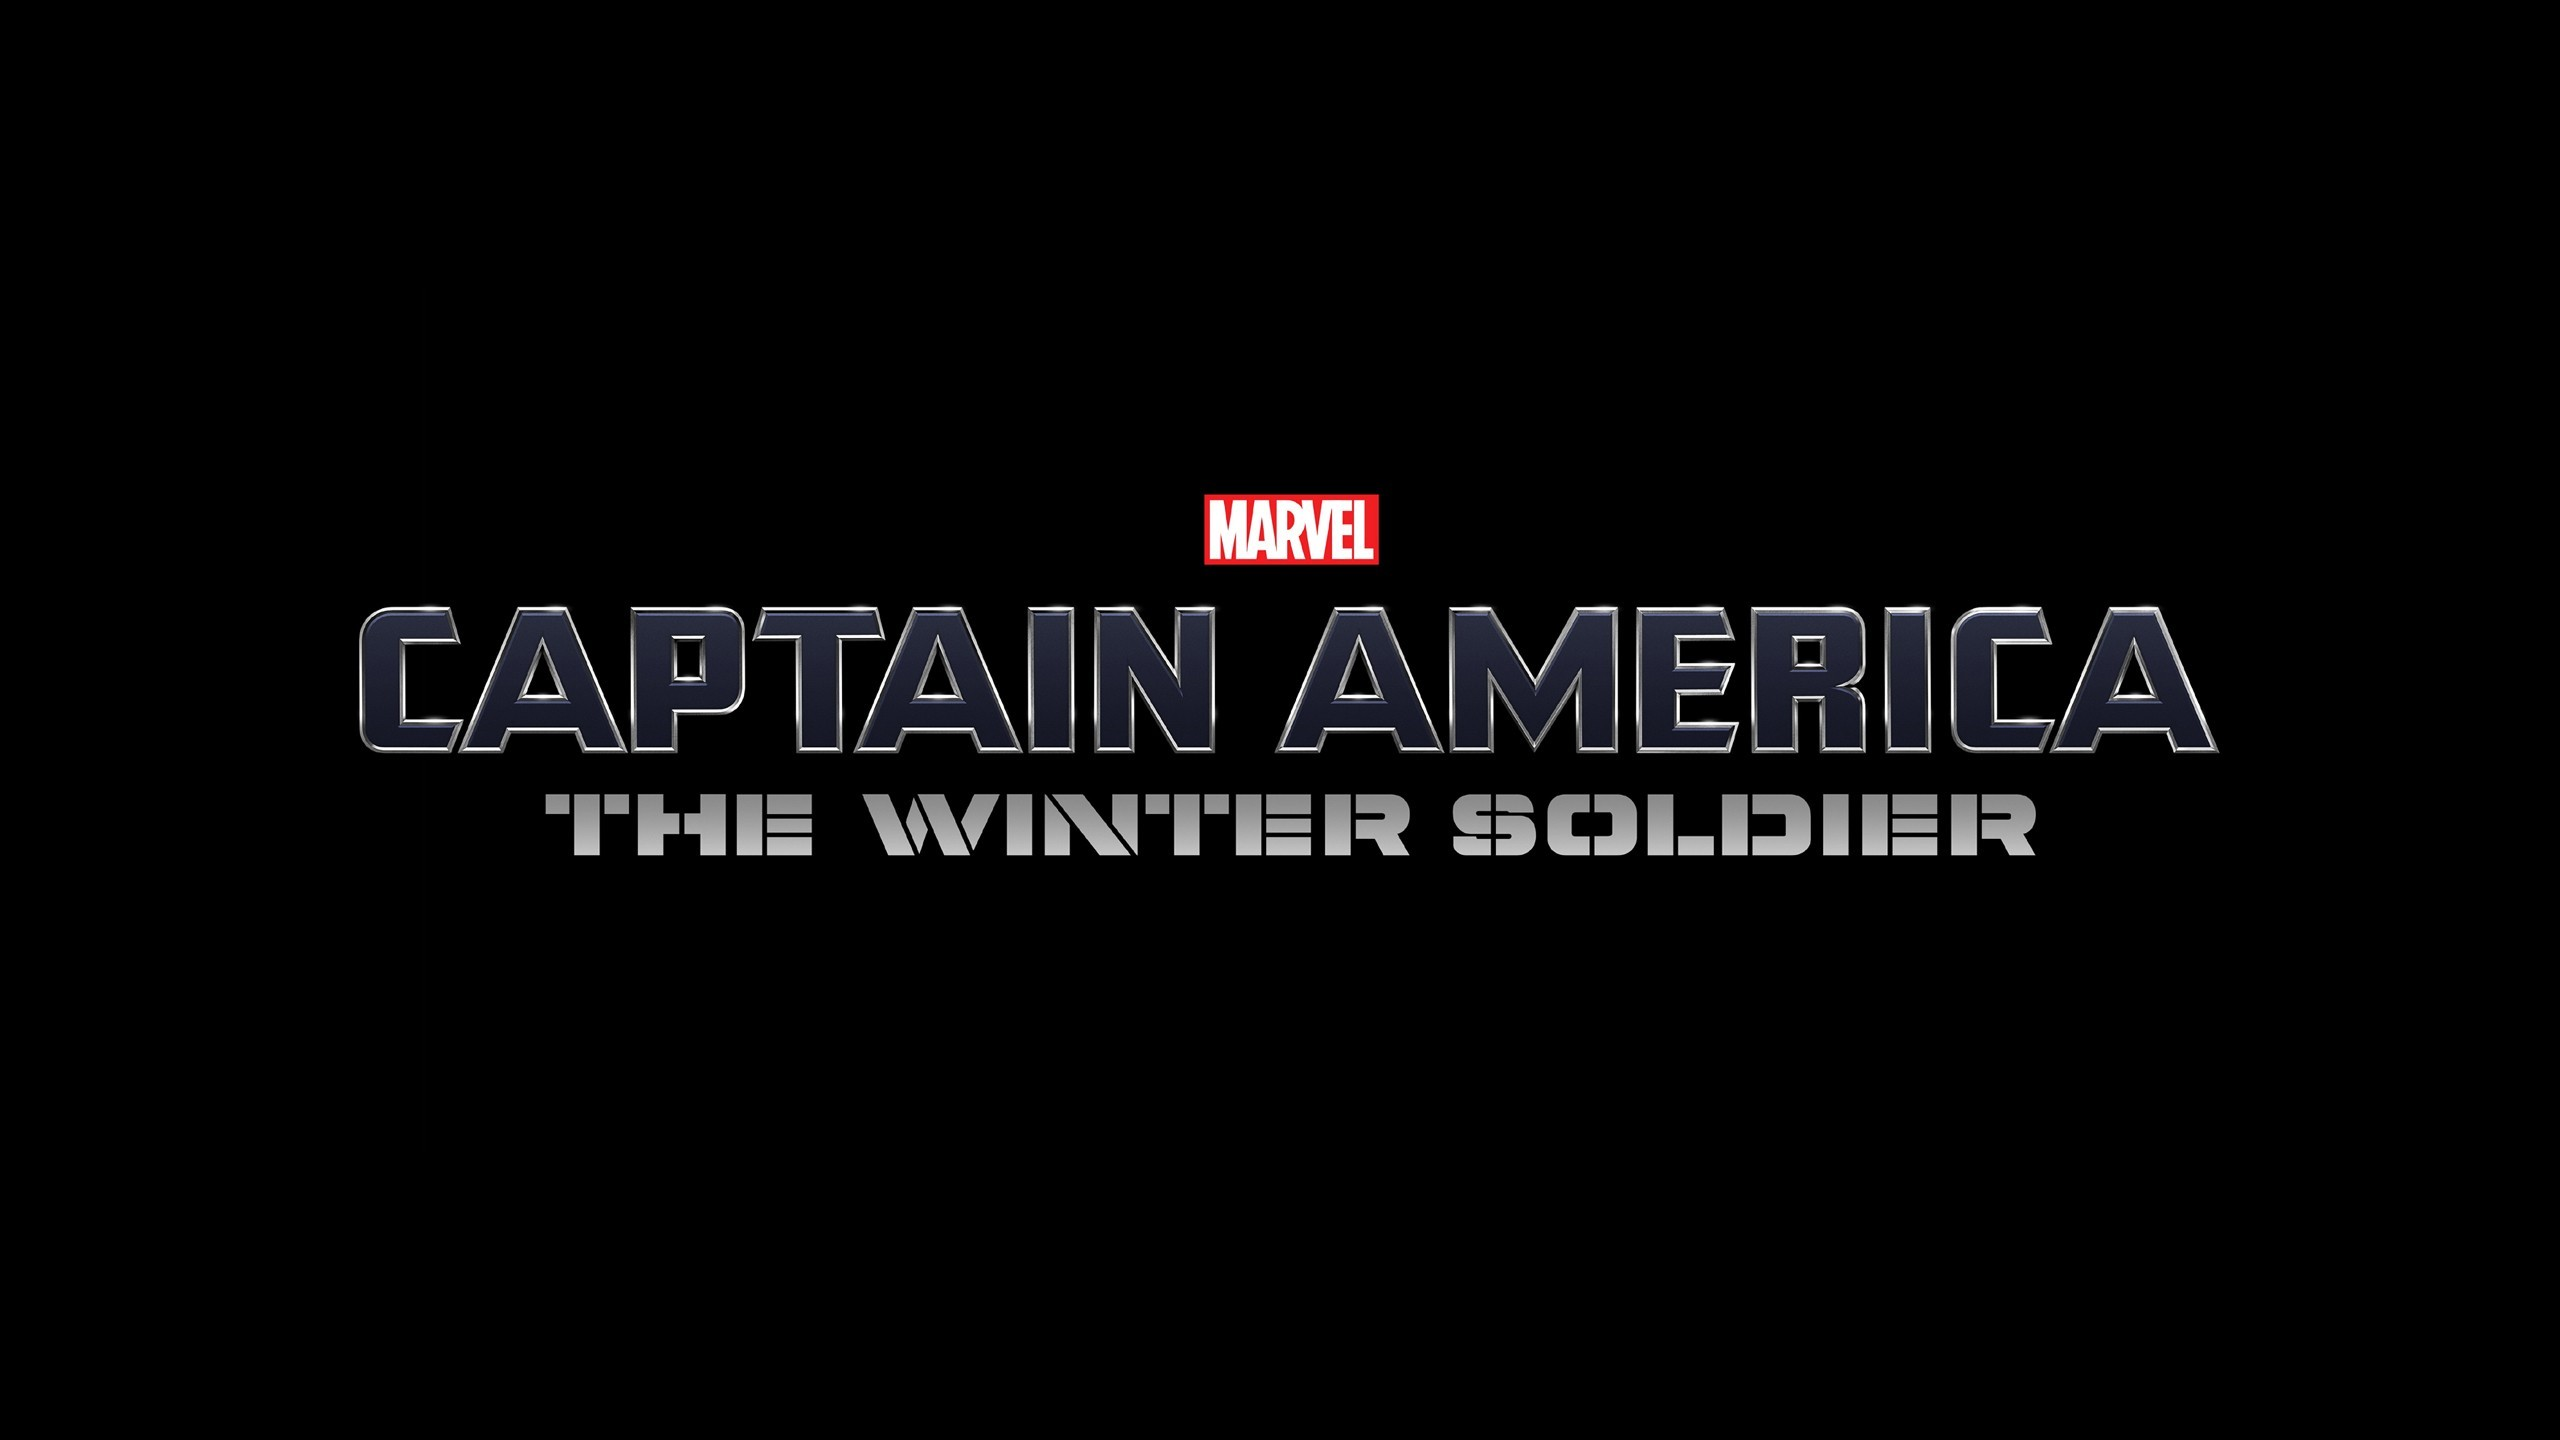 Simple Wallpaper Marvel Winter Soldier - winter-soldier-marvel-comics-black-background-logos-2560x1440-wallpaper  Collection_1002953.jpg